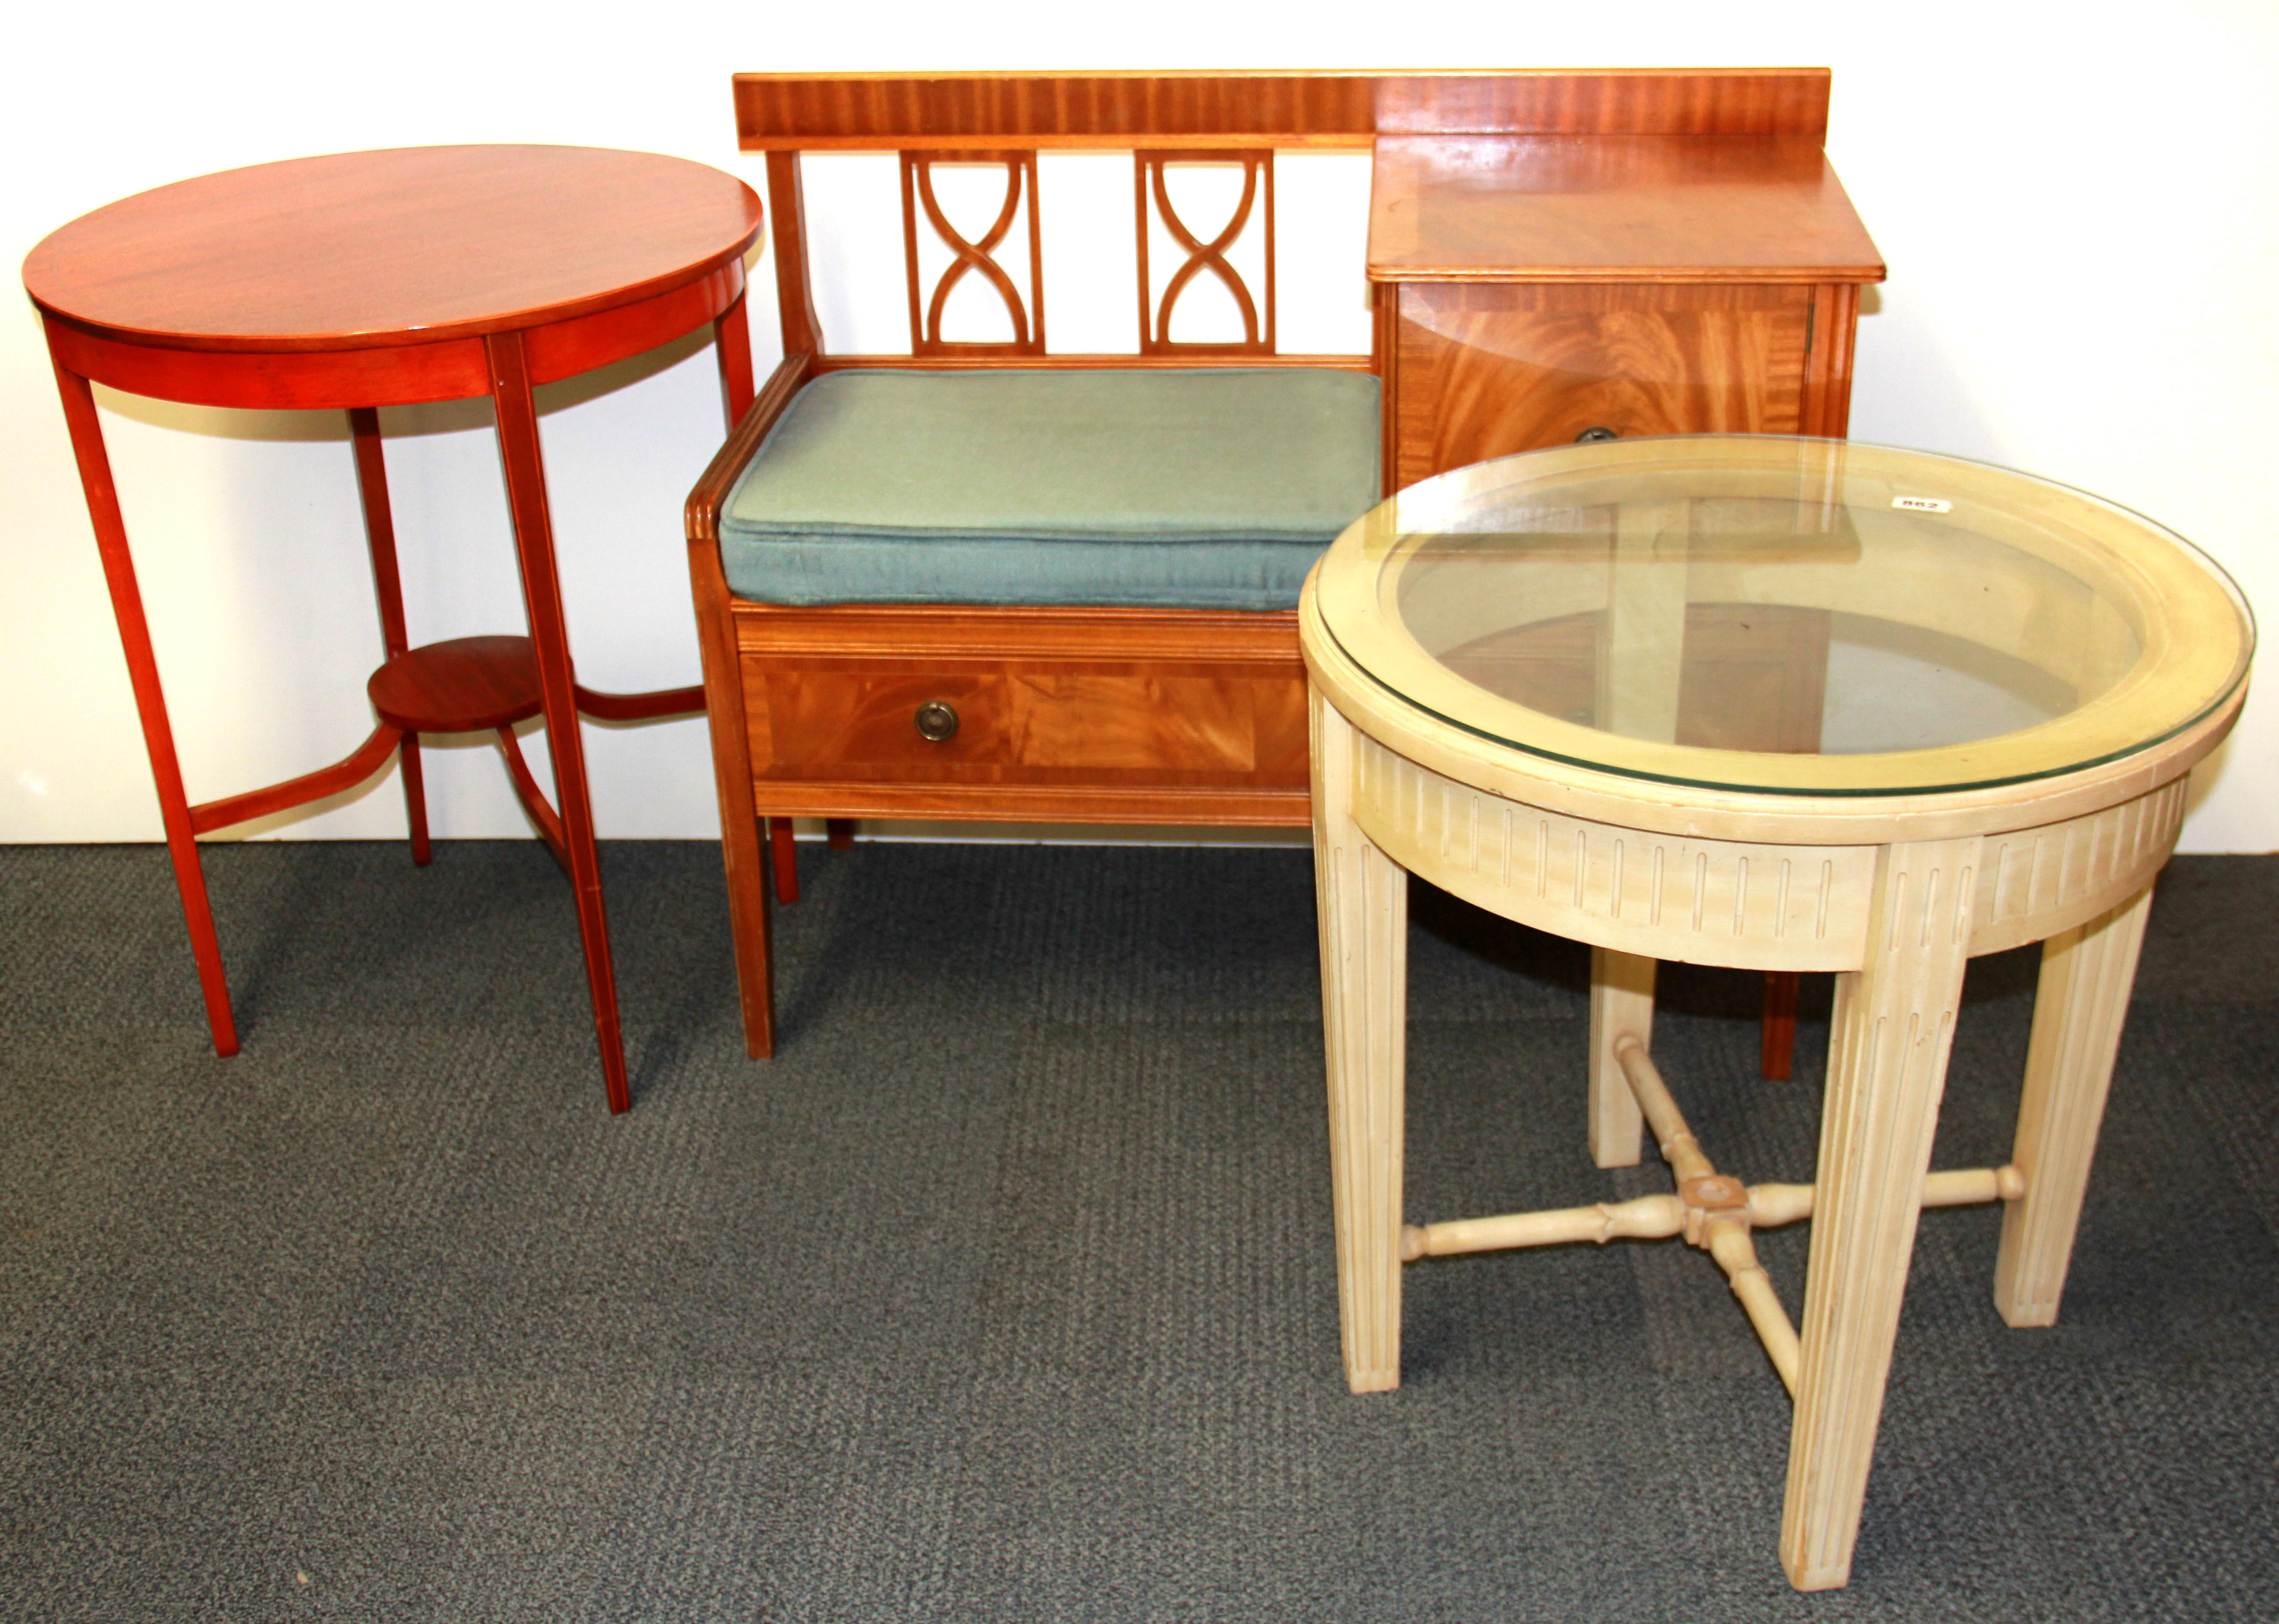 A Hall Table, A Circular Side Table And A Glass Topped Side Table.